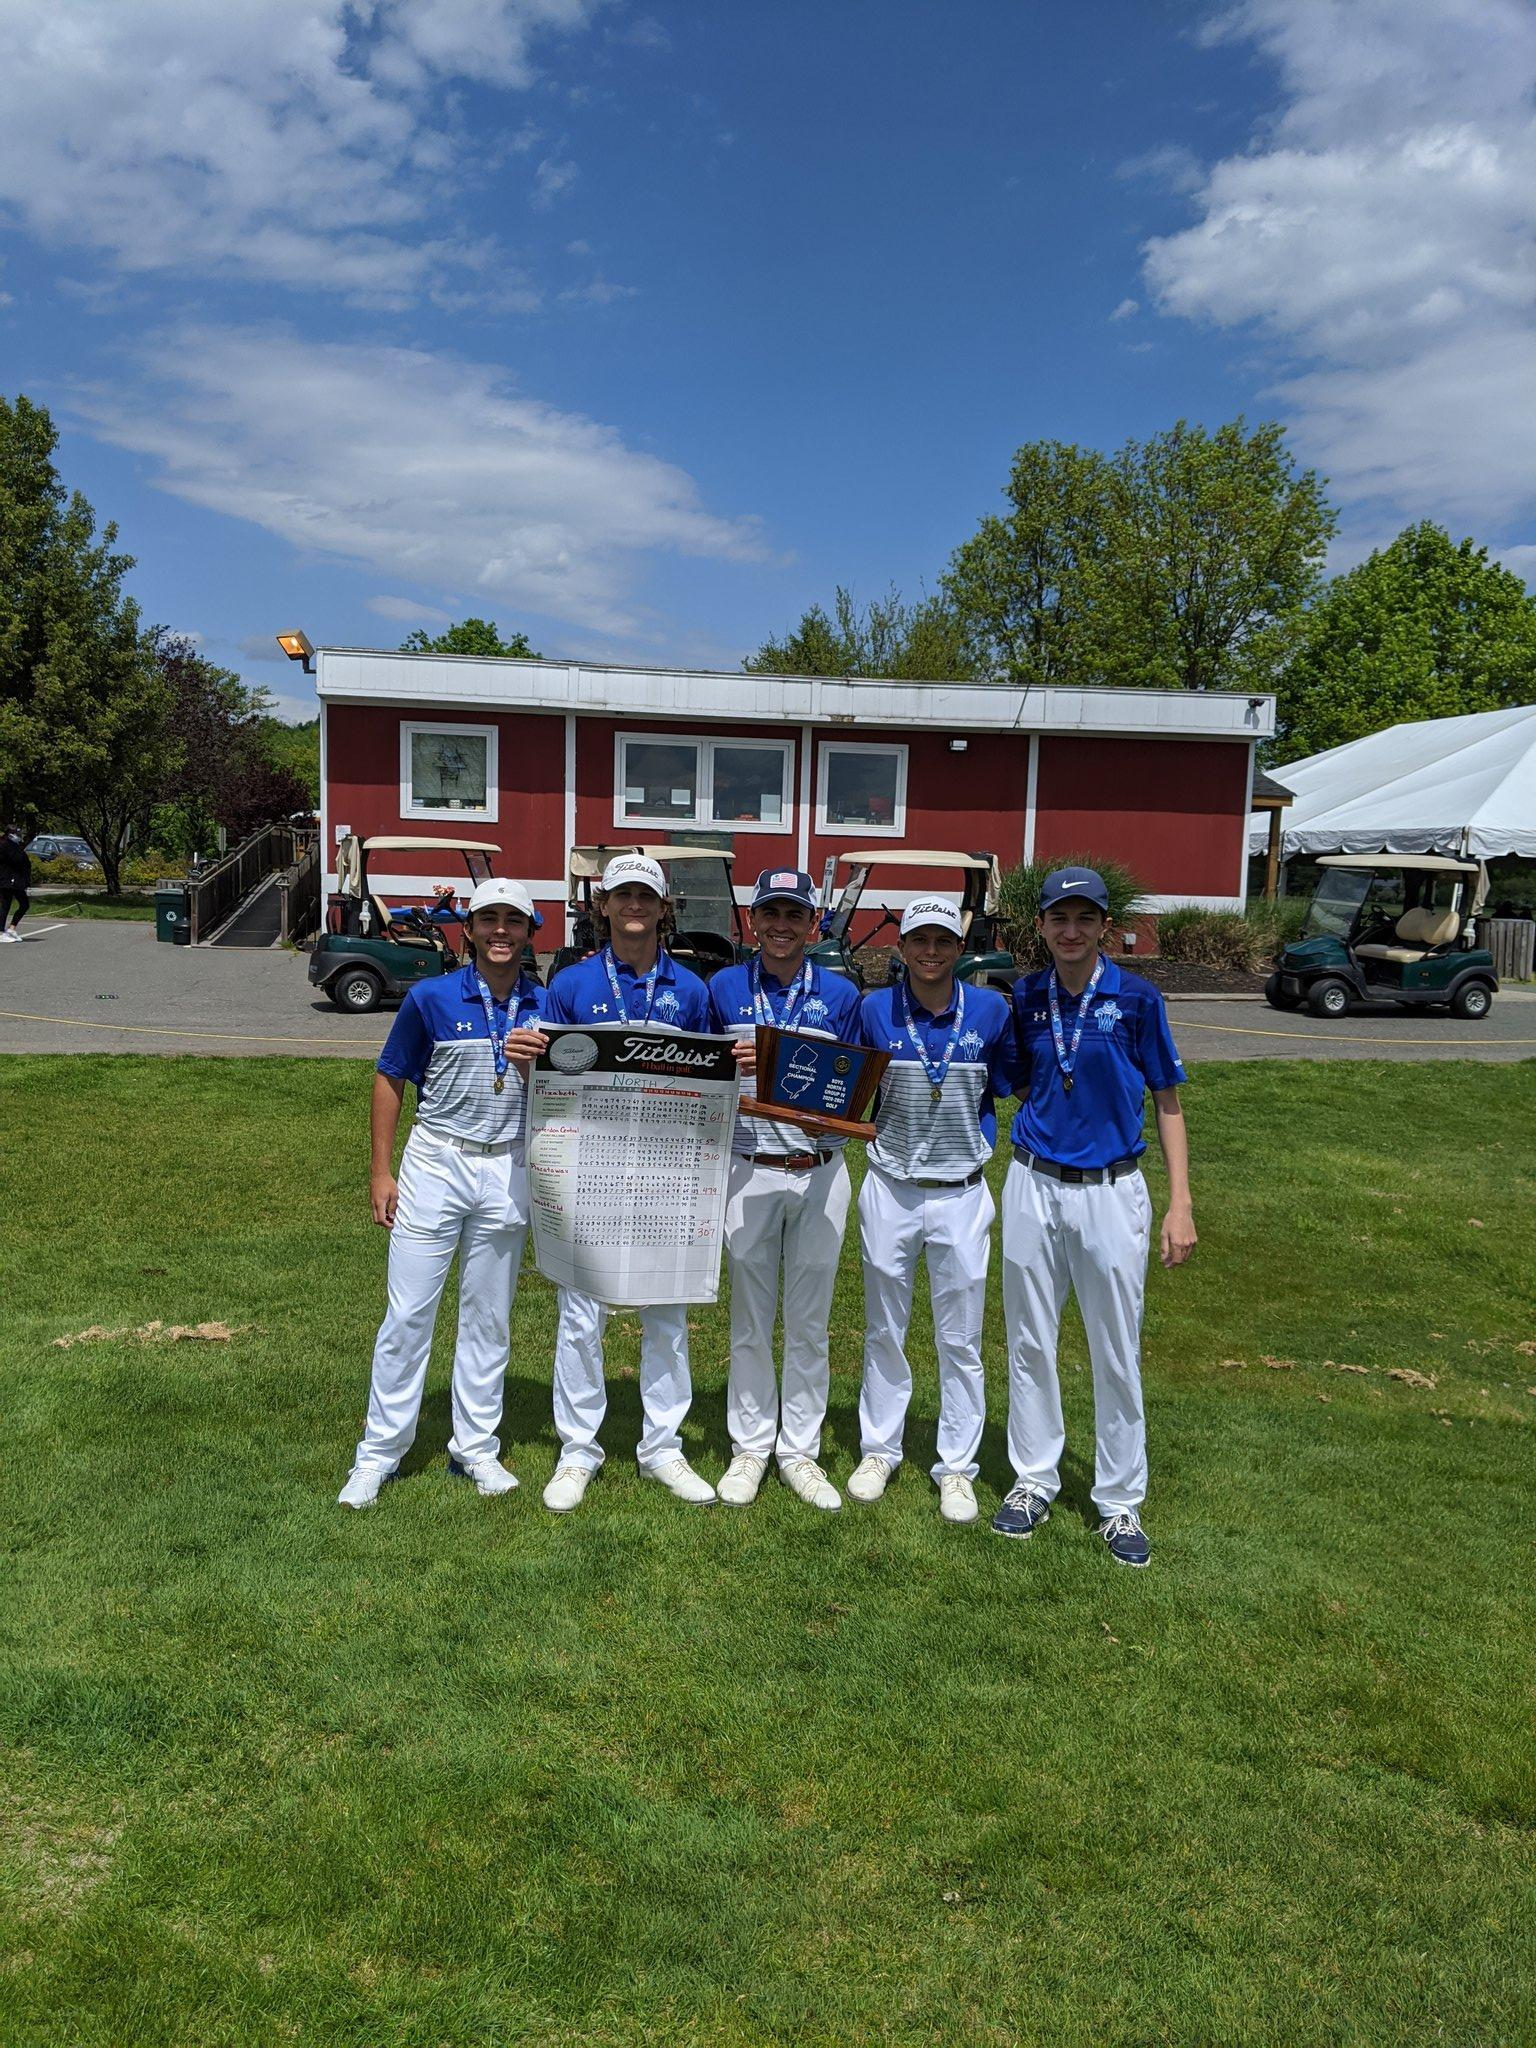 2021 North II Group IV Sectional Champions Trophy Colin Summers 72 (2nd Individual), Barnes Blake 76, Nicholas Conti 78, David Givand 81, and Thomas Smith 85.  Team score: 307. Congrats on the win and moving on to TOC!